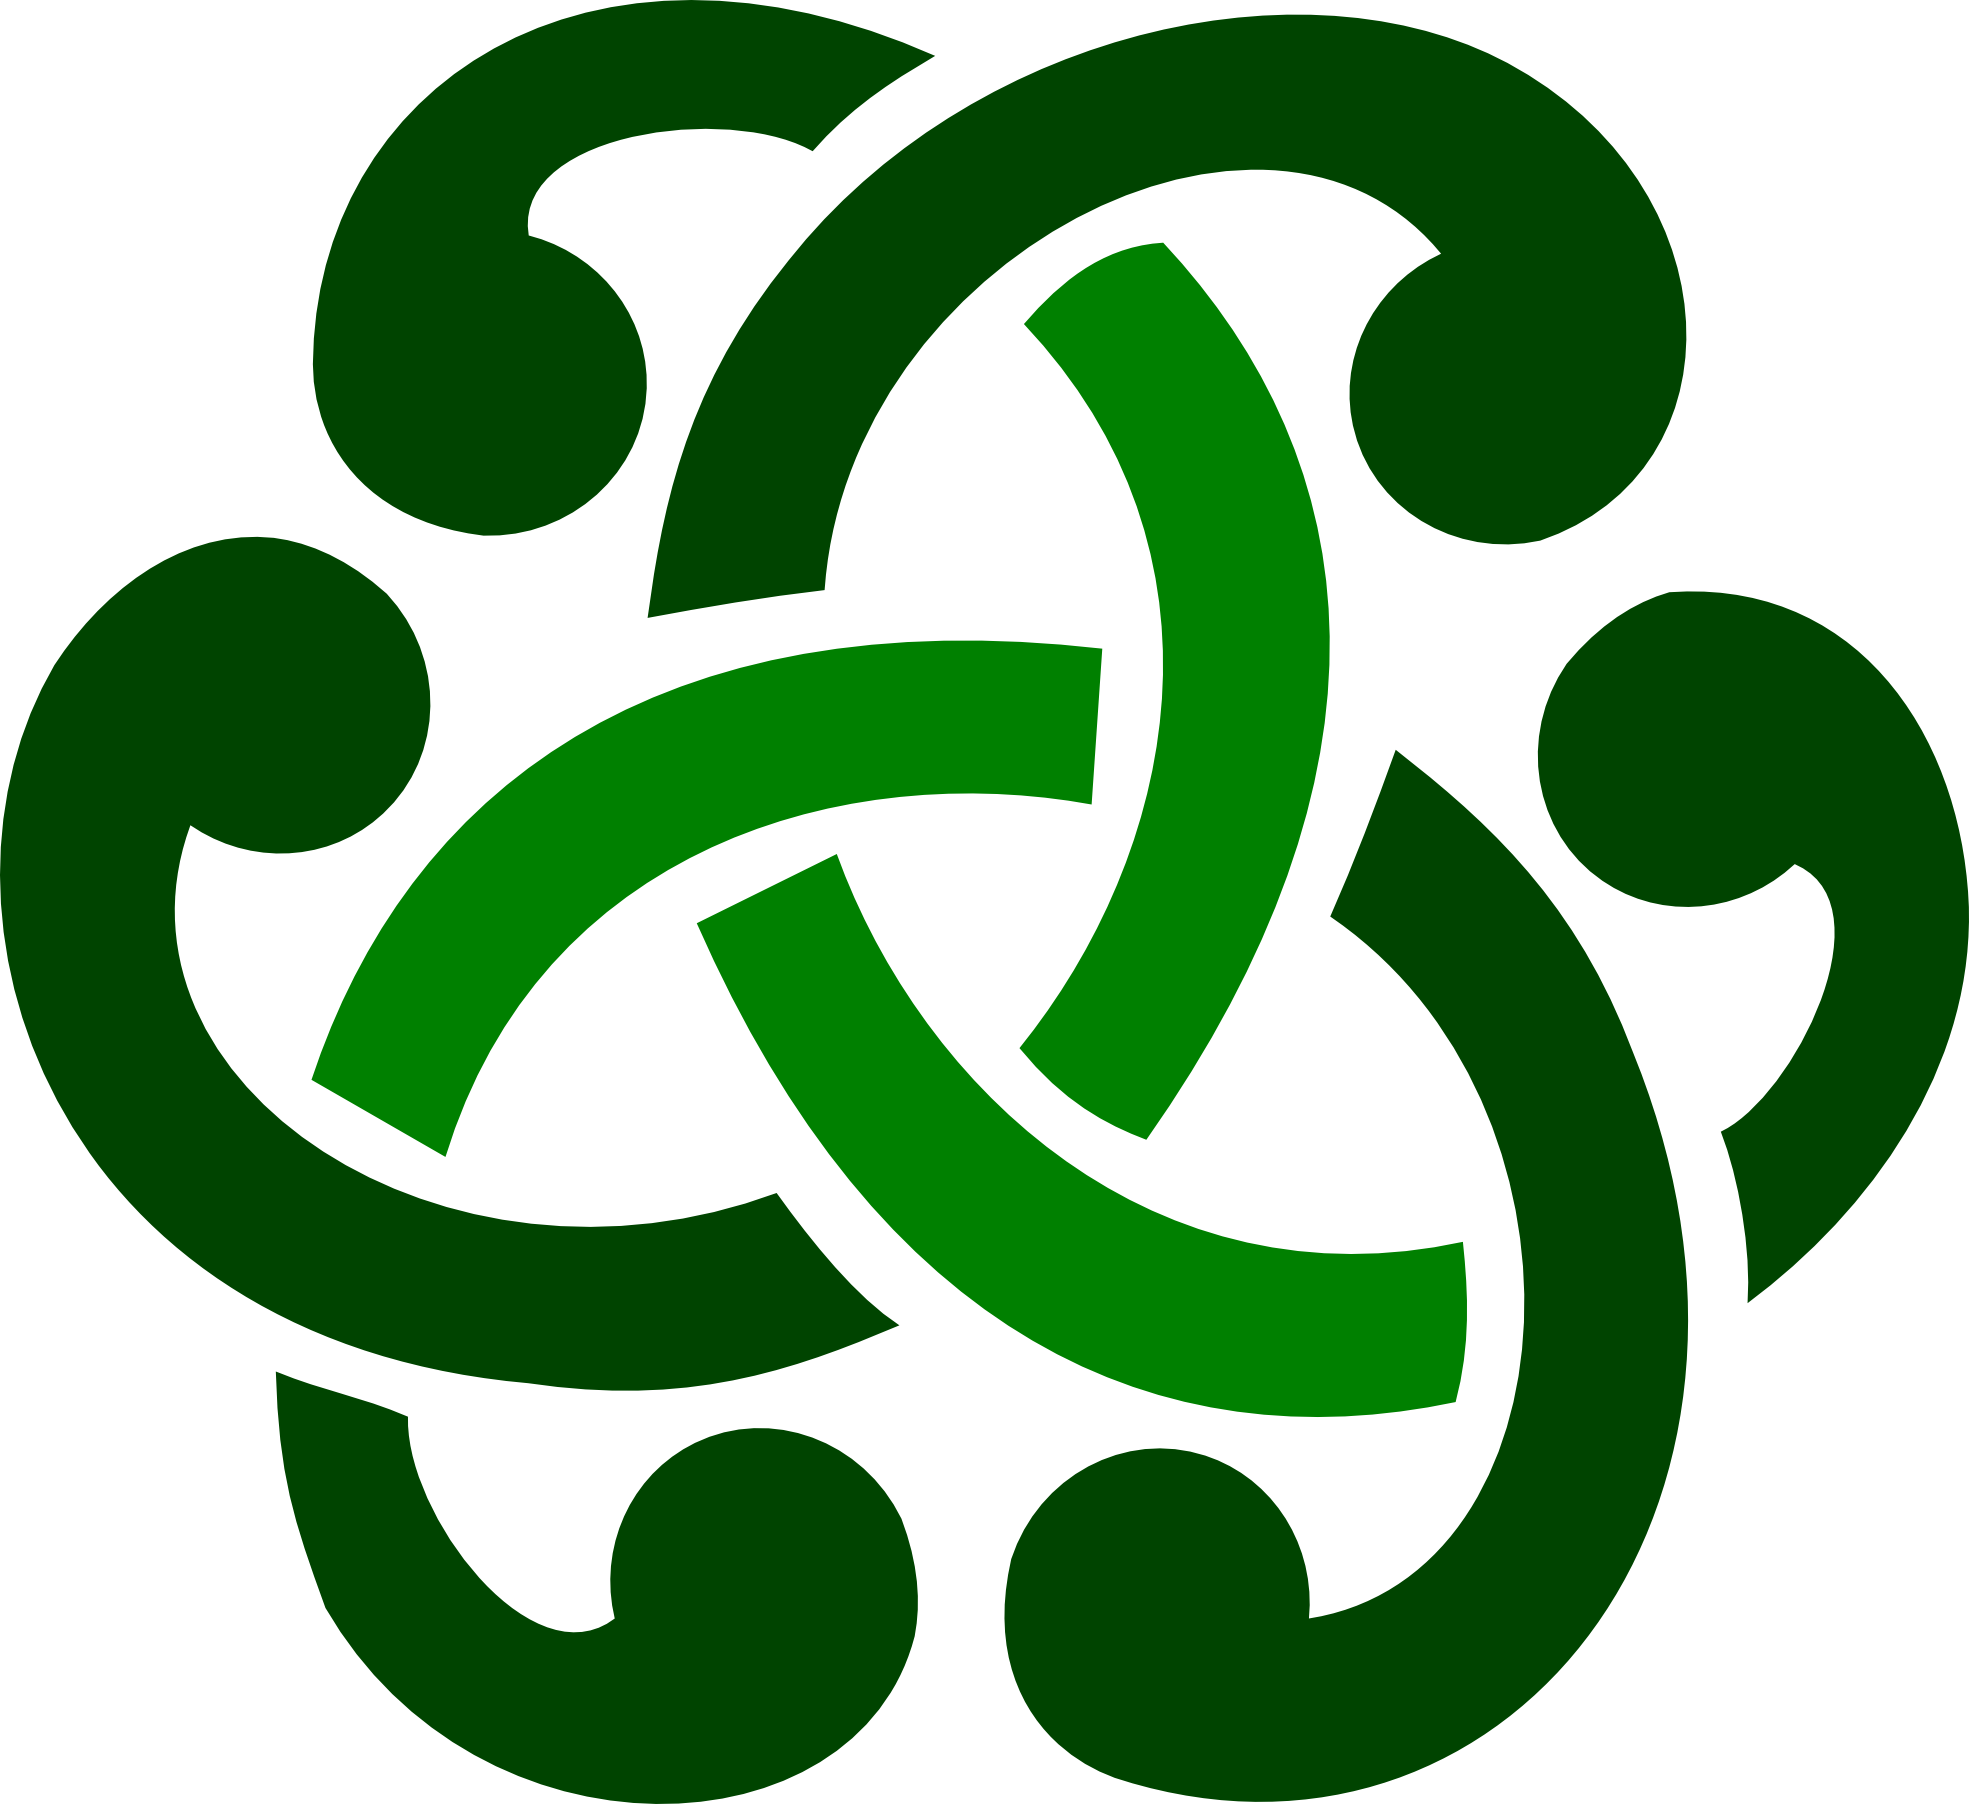 celtic symbol for family - Google Search … | Me & the Kids ...